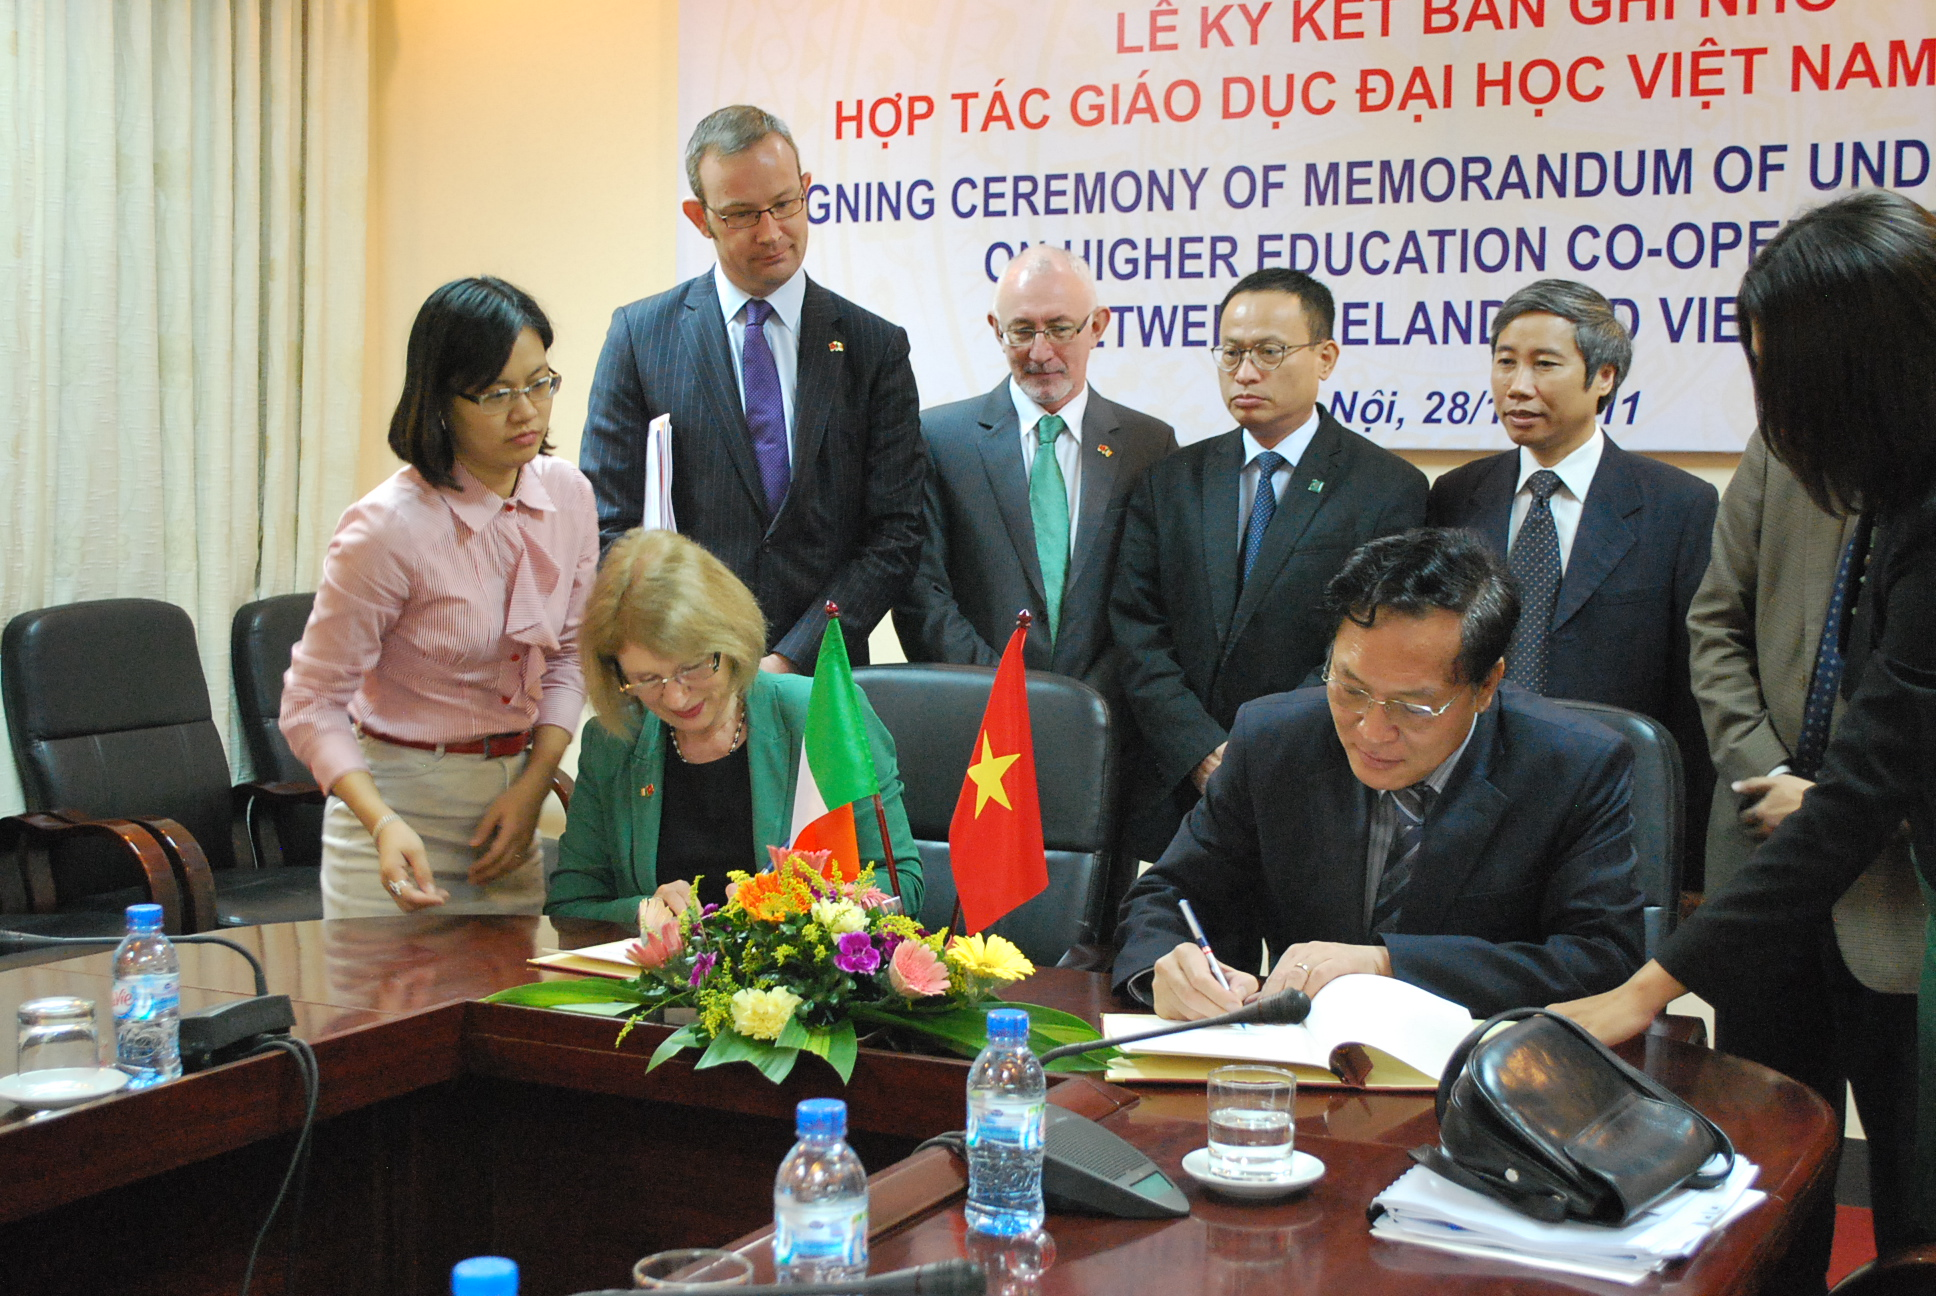 Ireland's Minister of State for Trade and Development Jan O'Sullivan and Vietnam's Minister of Education and Training Pham Vu Luan sign education MOU in Hanoi on Monday (Photo: Simon Roughneen)